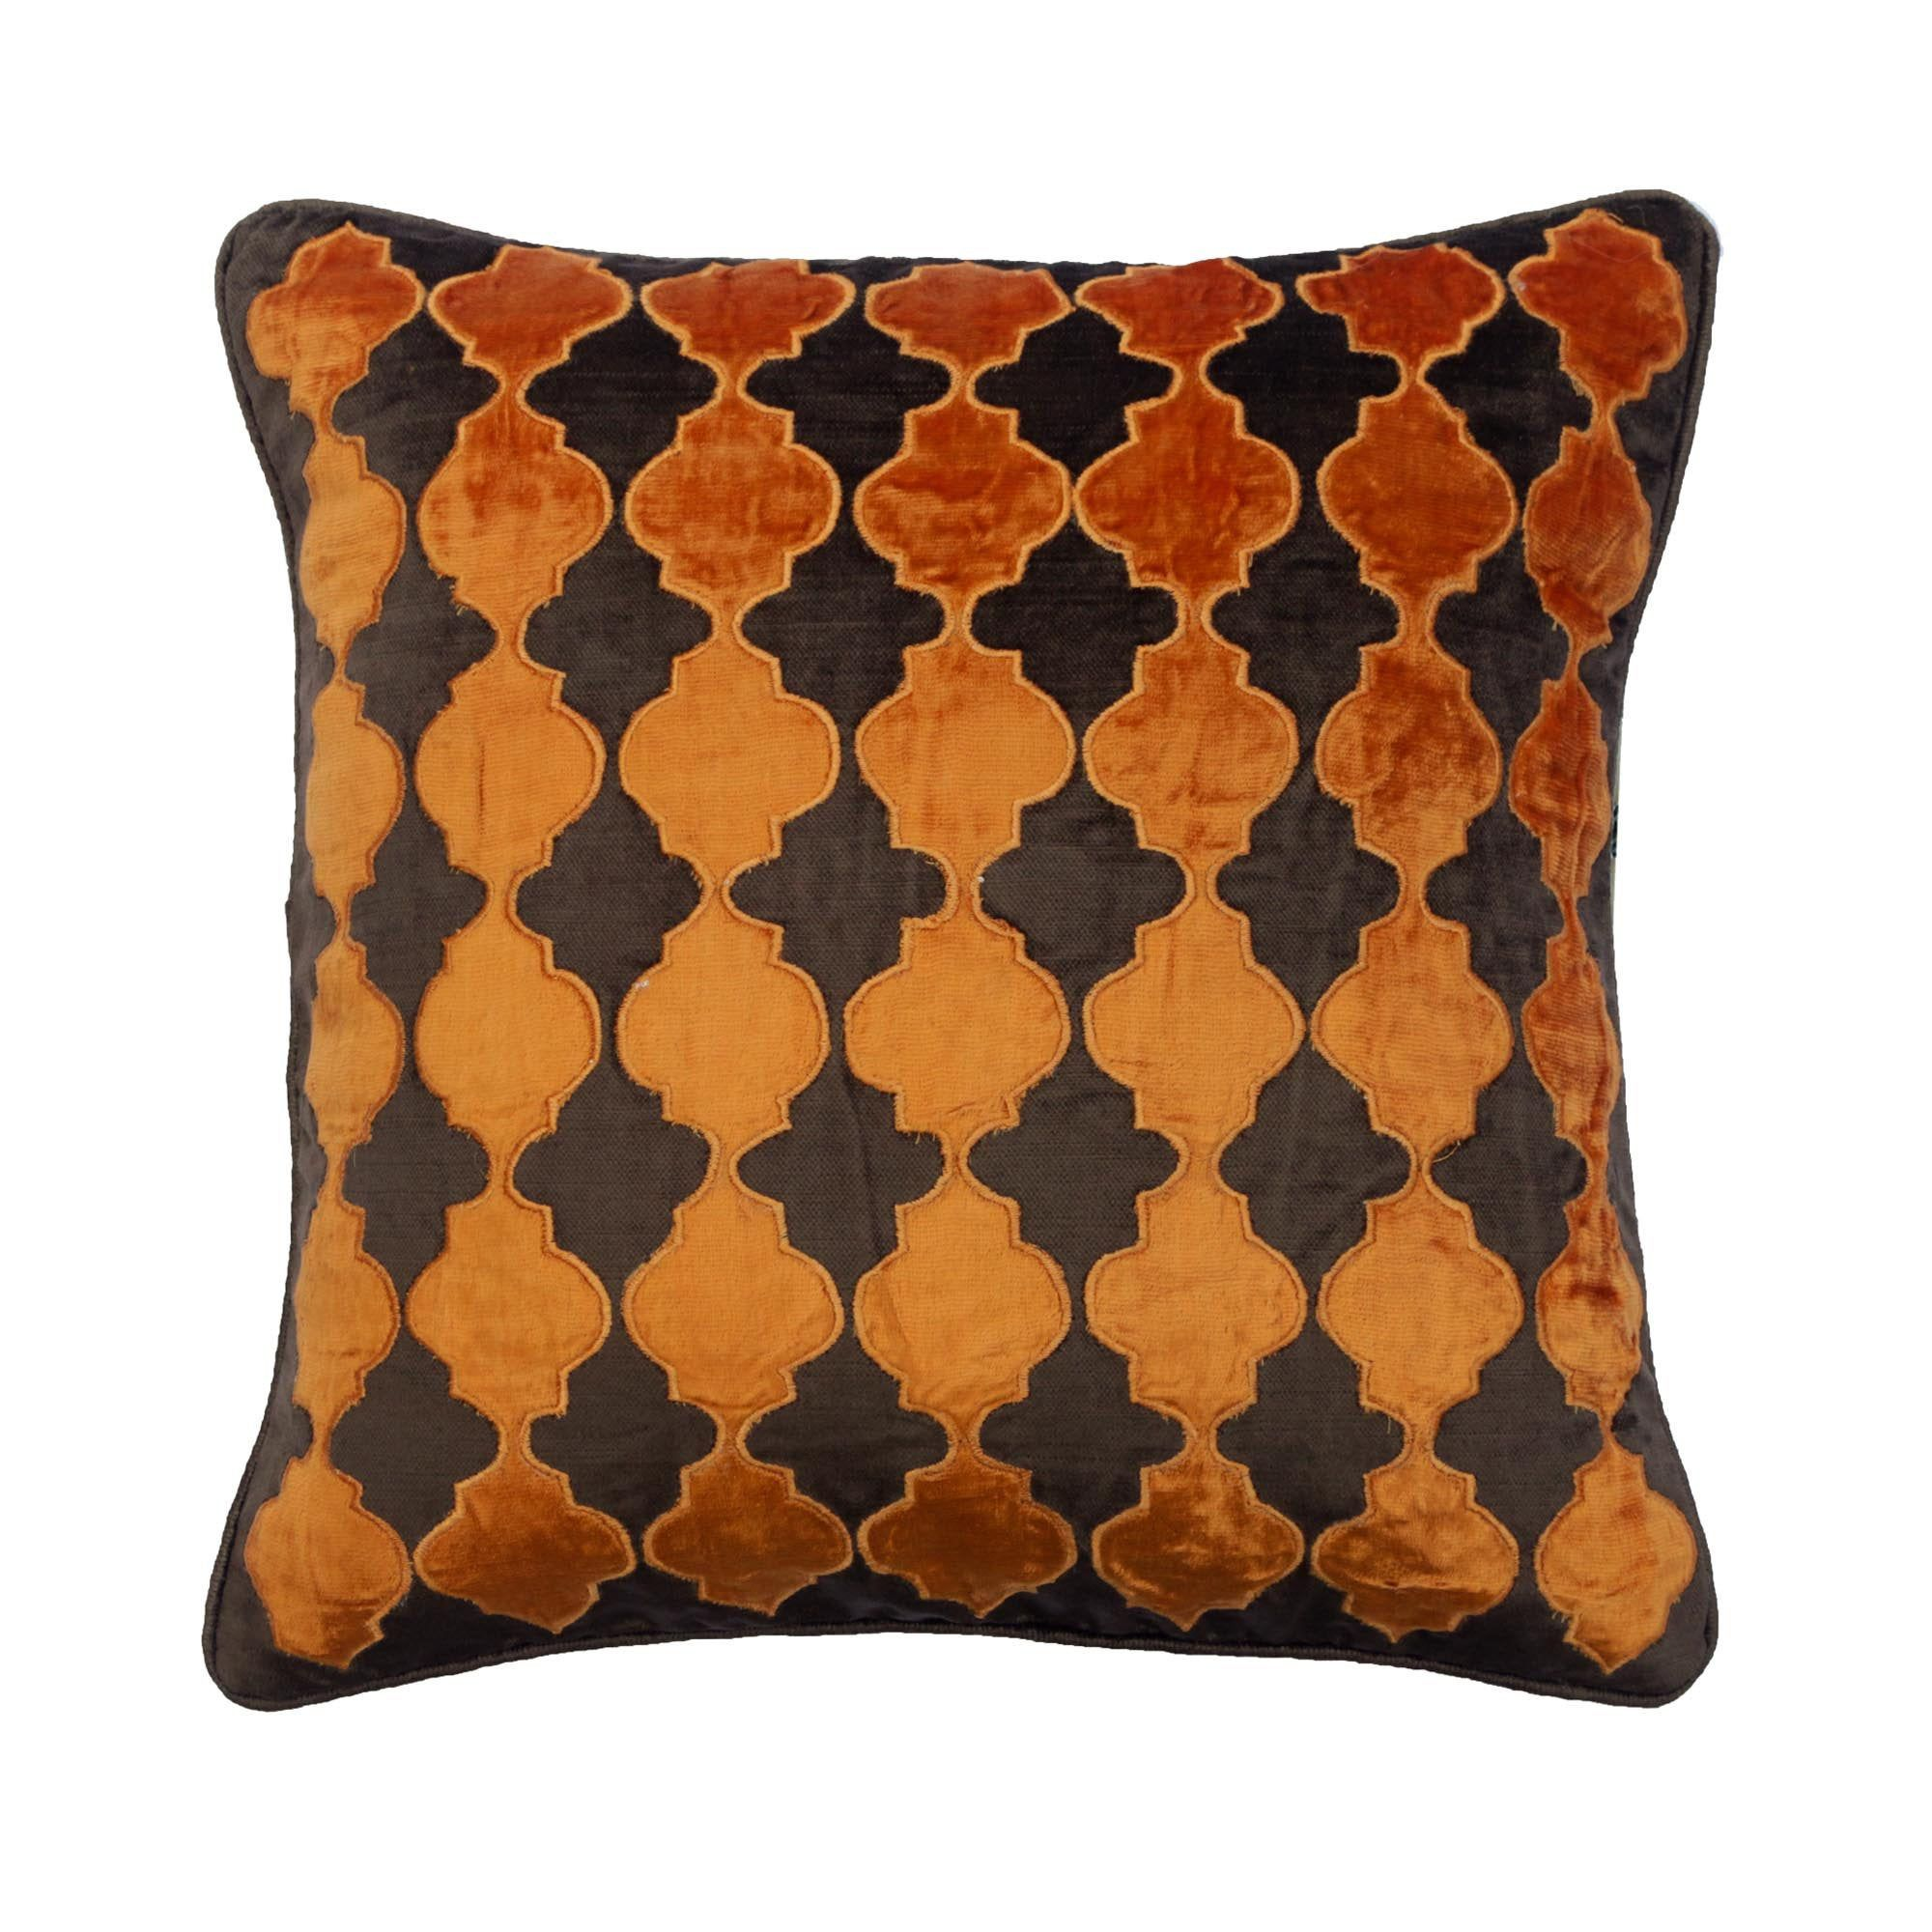 longyi  Light Brown cushion cover  Hand woven Fabric Accent Throw  decorative cushions  case Home decor sofa Couch textiles Unique Pillows